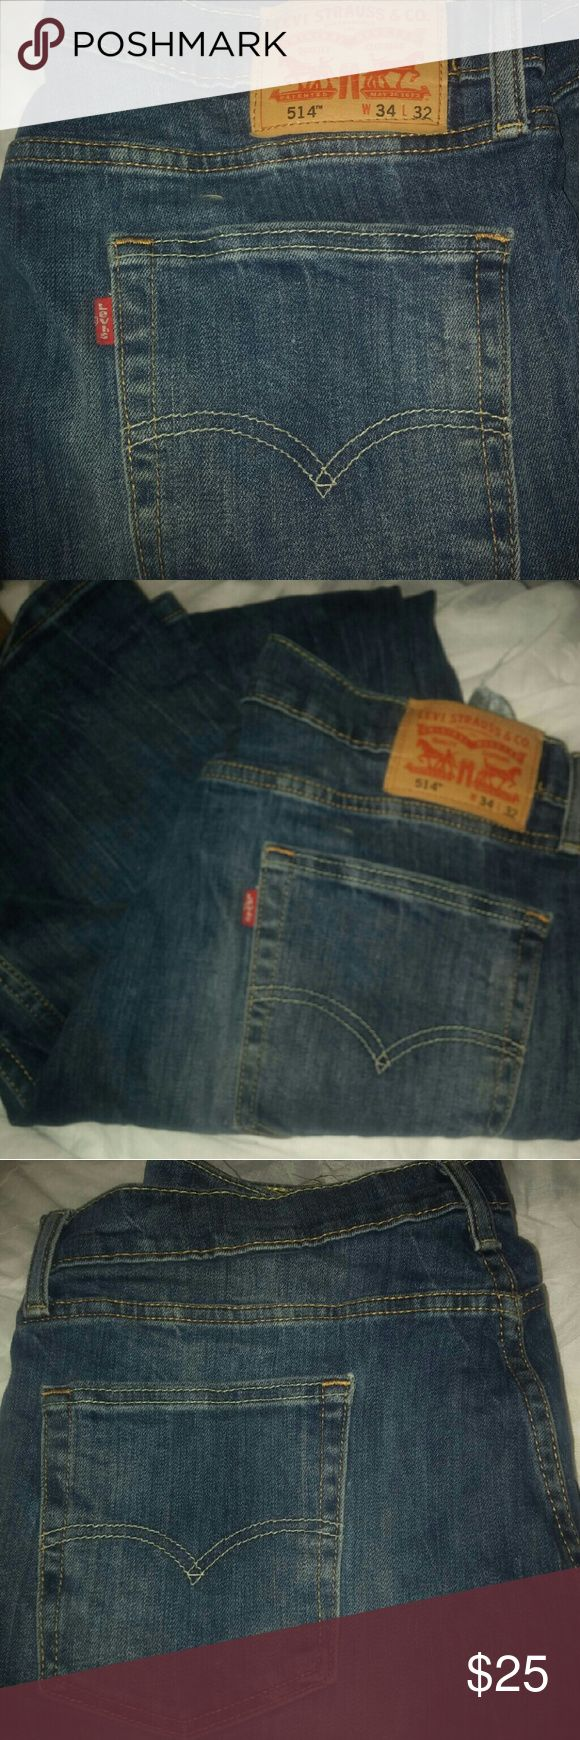 Levis 514 Worn one time levi 514 in 34w 32L .in stone wash blue color Levi's Jeans Bootcut